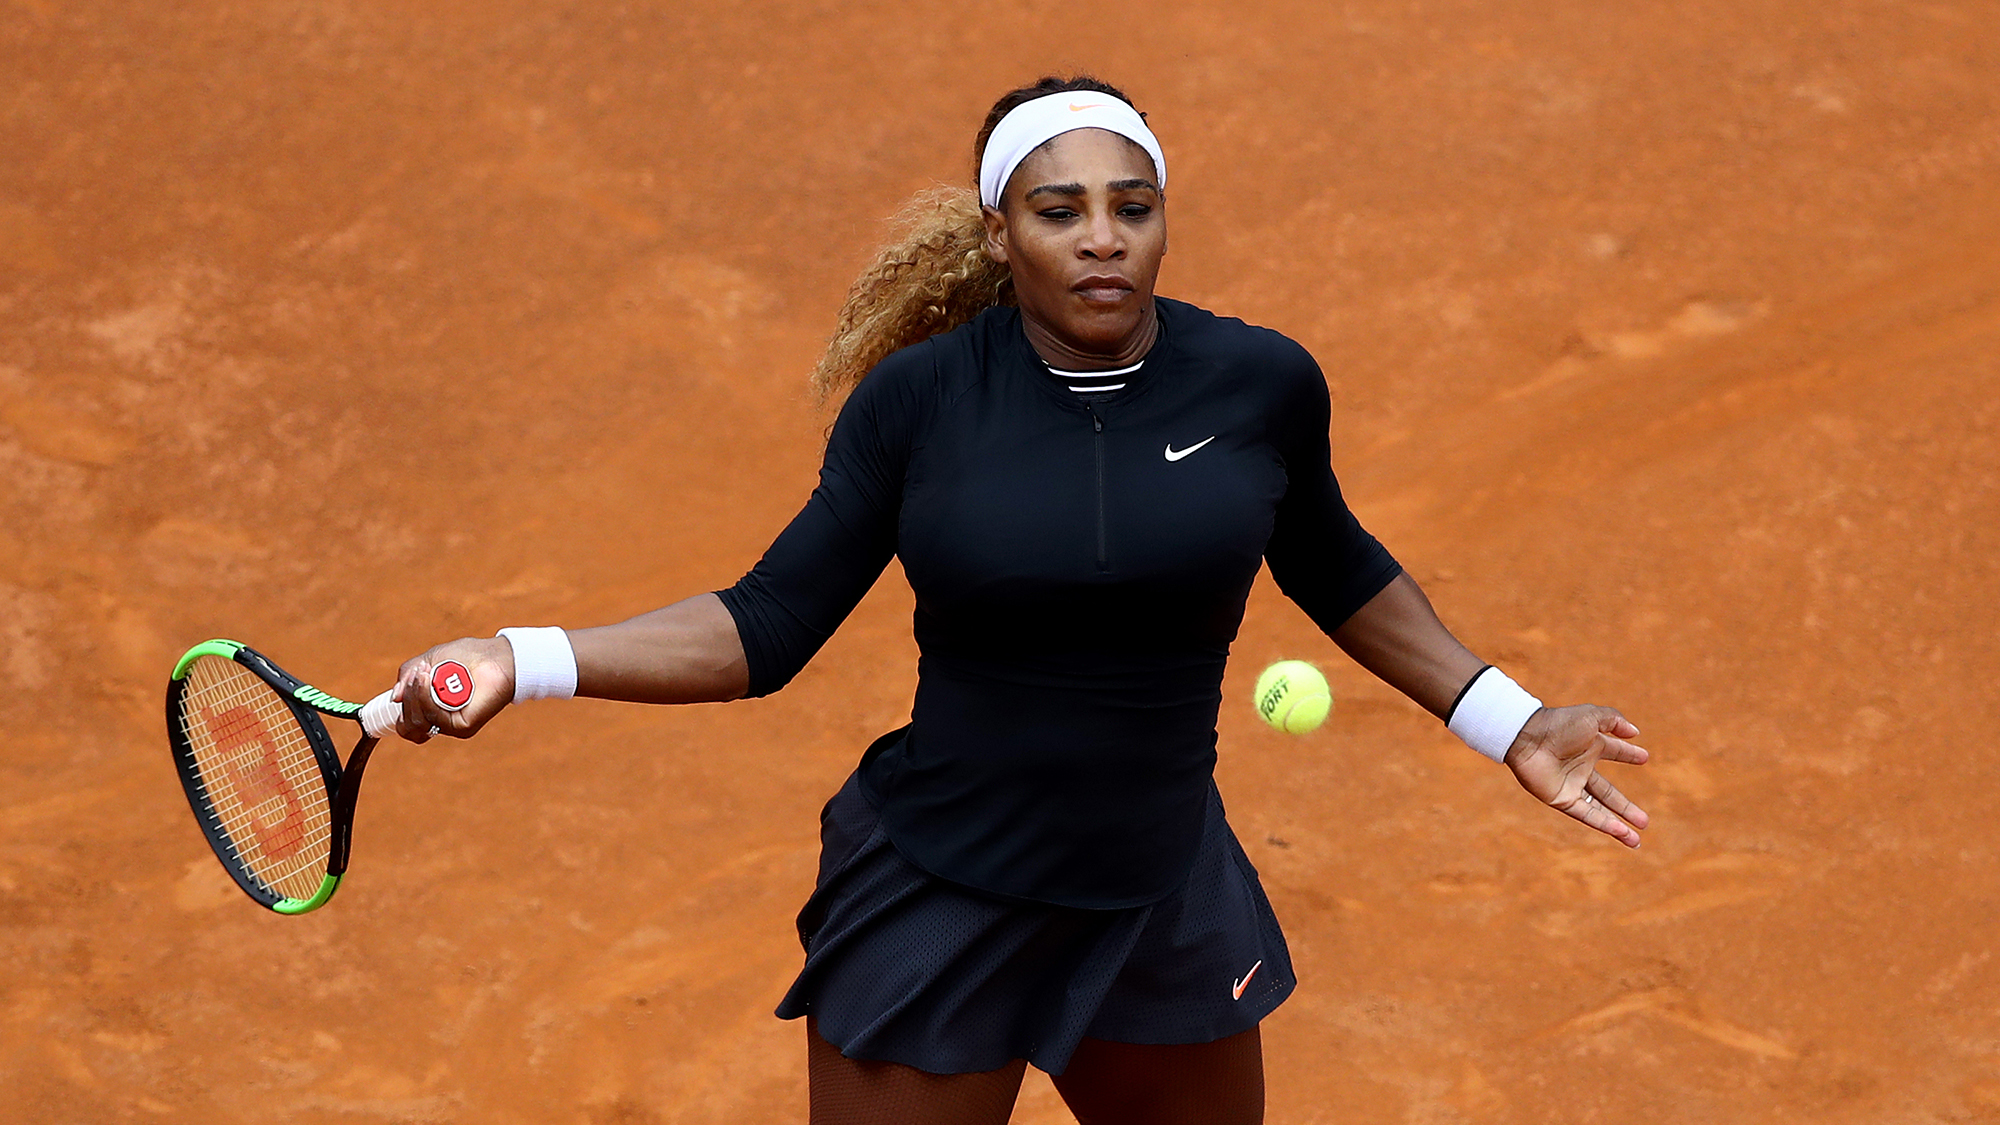 Get prepared for the French Open with Jon Wertheim's seed reports, upset specials, predictions and much more.